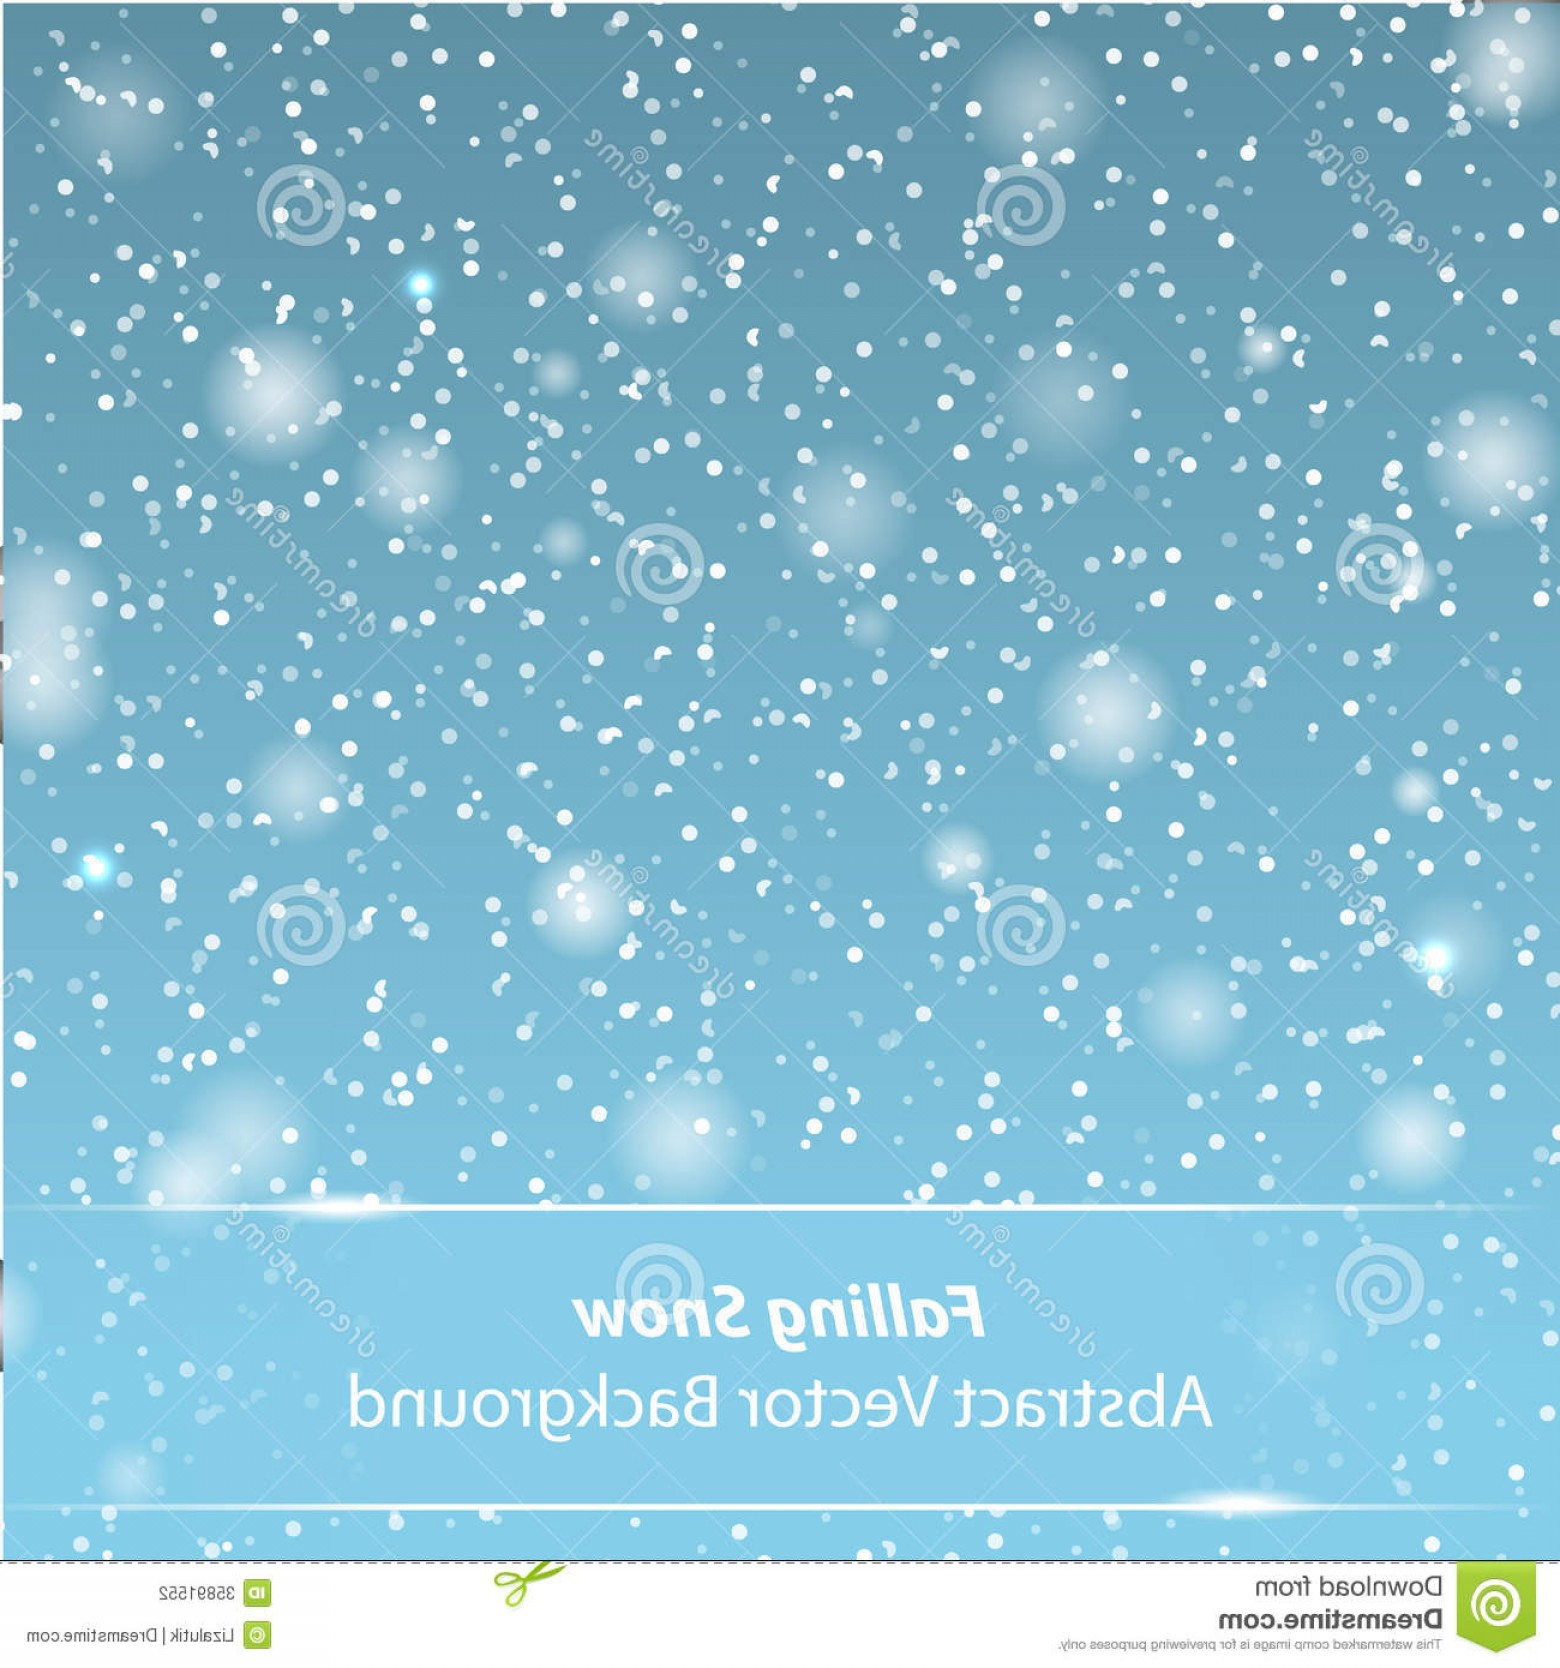 Snow Falling Vector Free: Stock Photography Falling Snow Vector Background Your Own Design Image